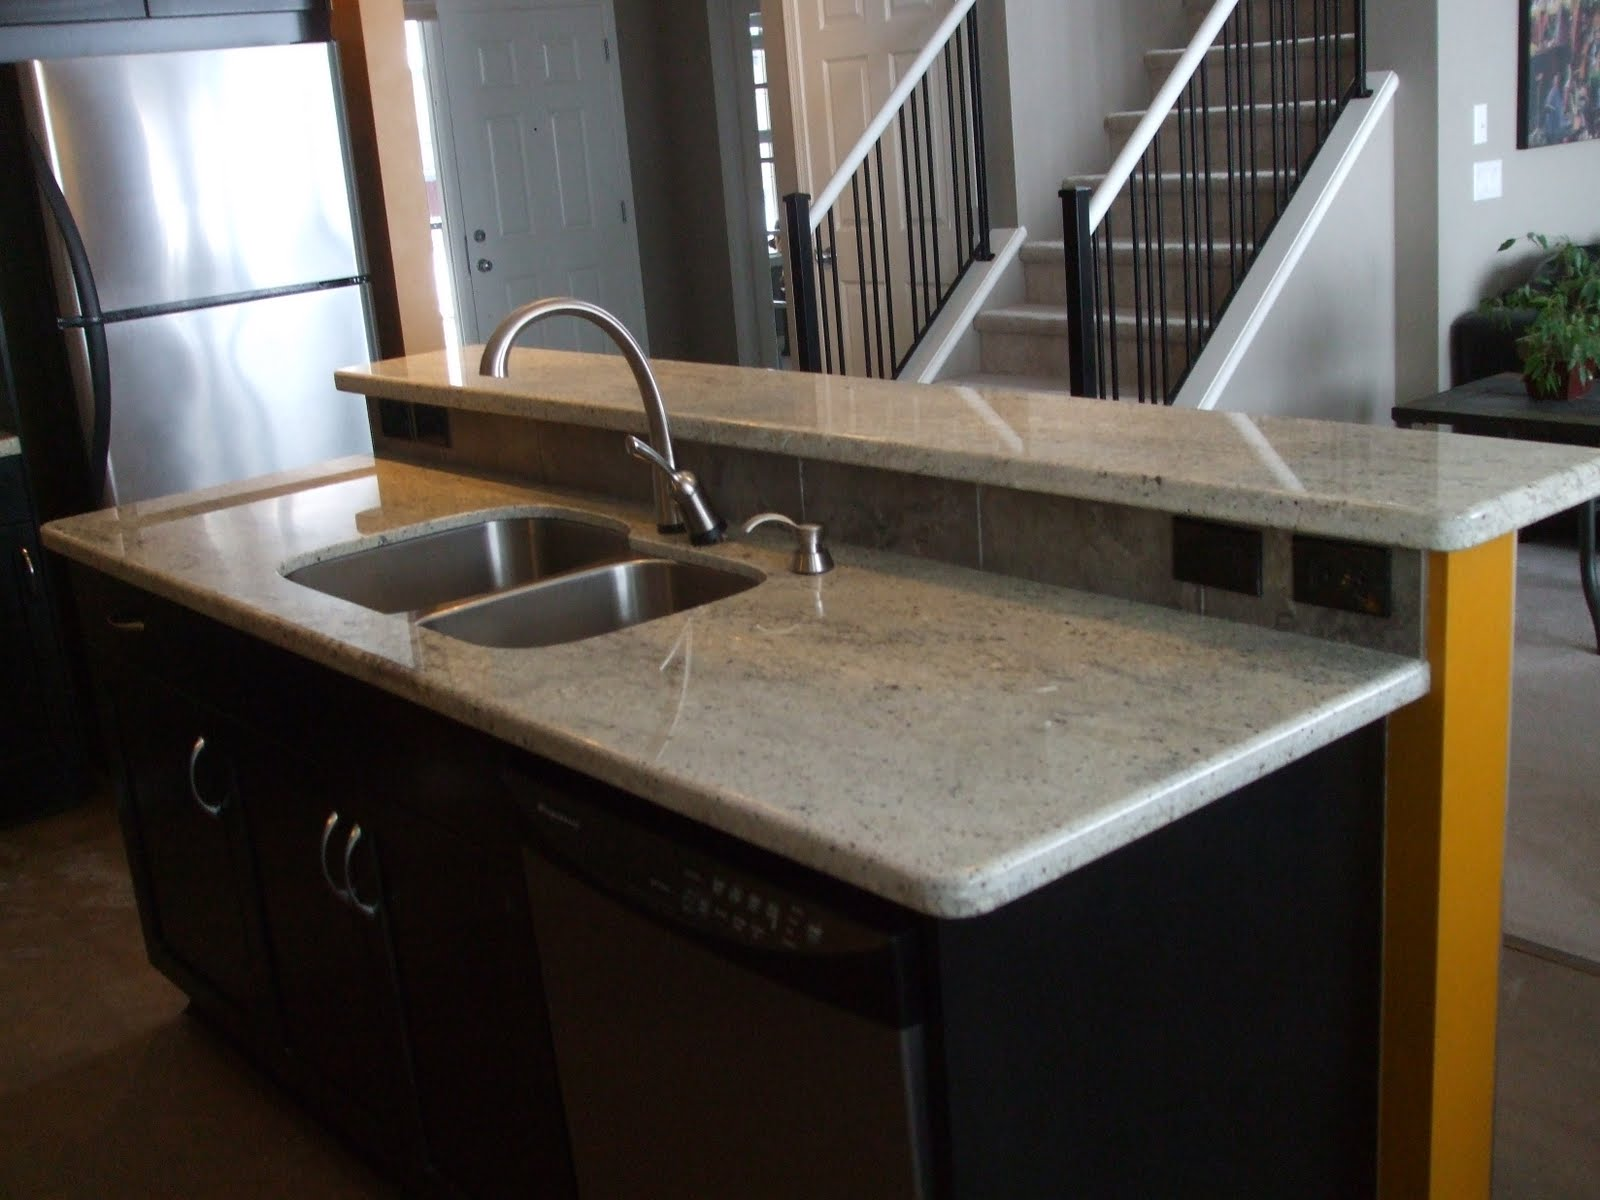 Stainless Steel Kitchen Faucet On Granite